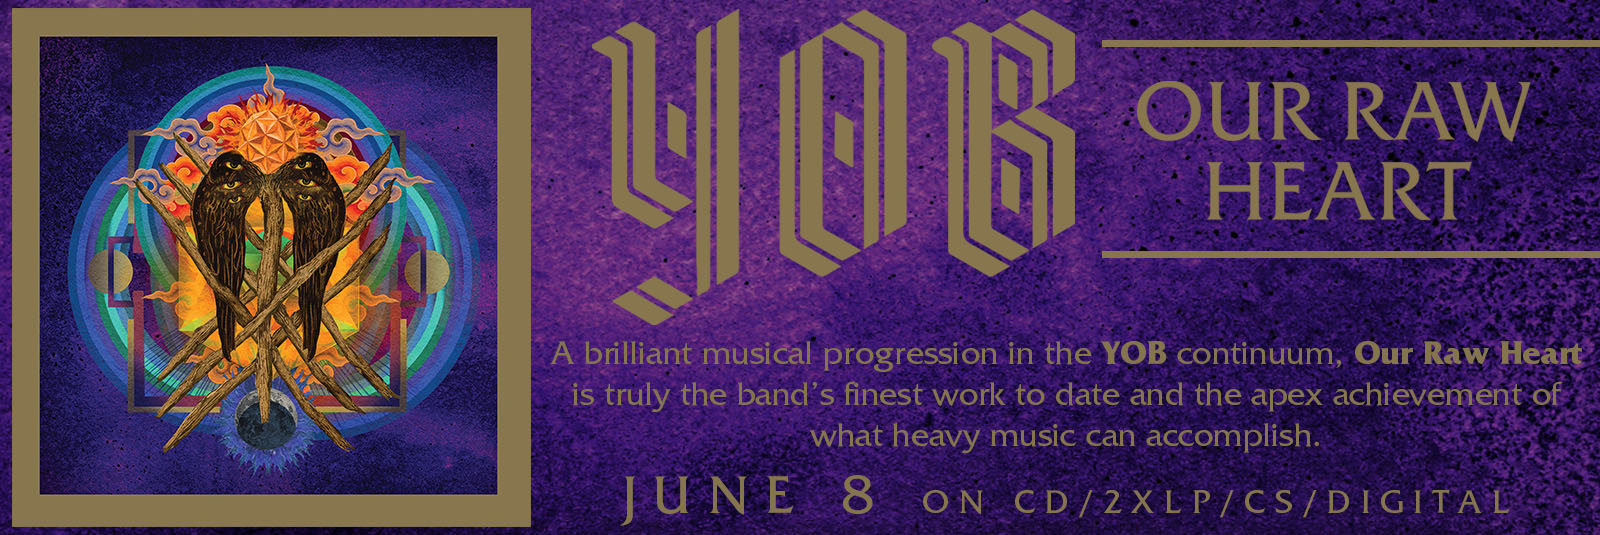 yob-our-raw-heart-relapse-doom-metal-june-8